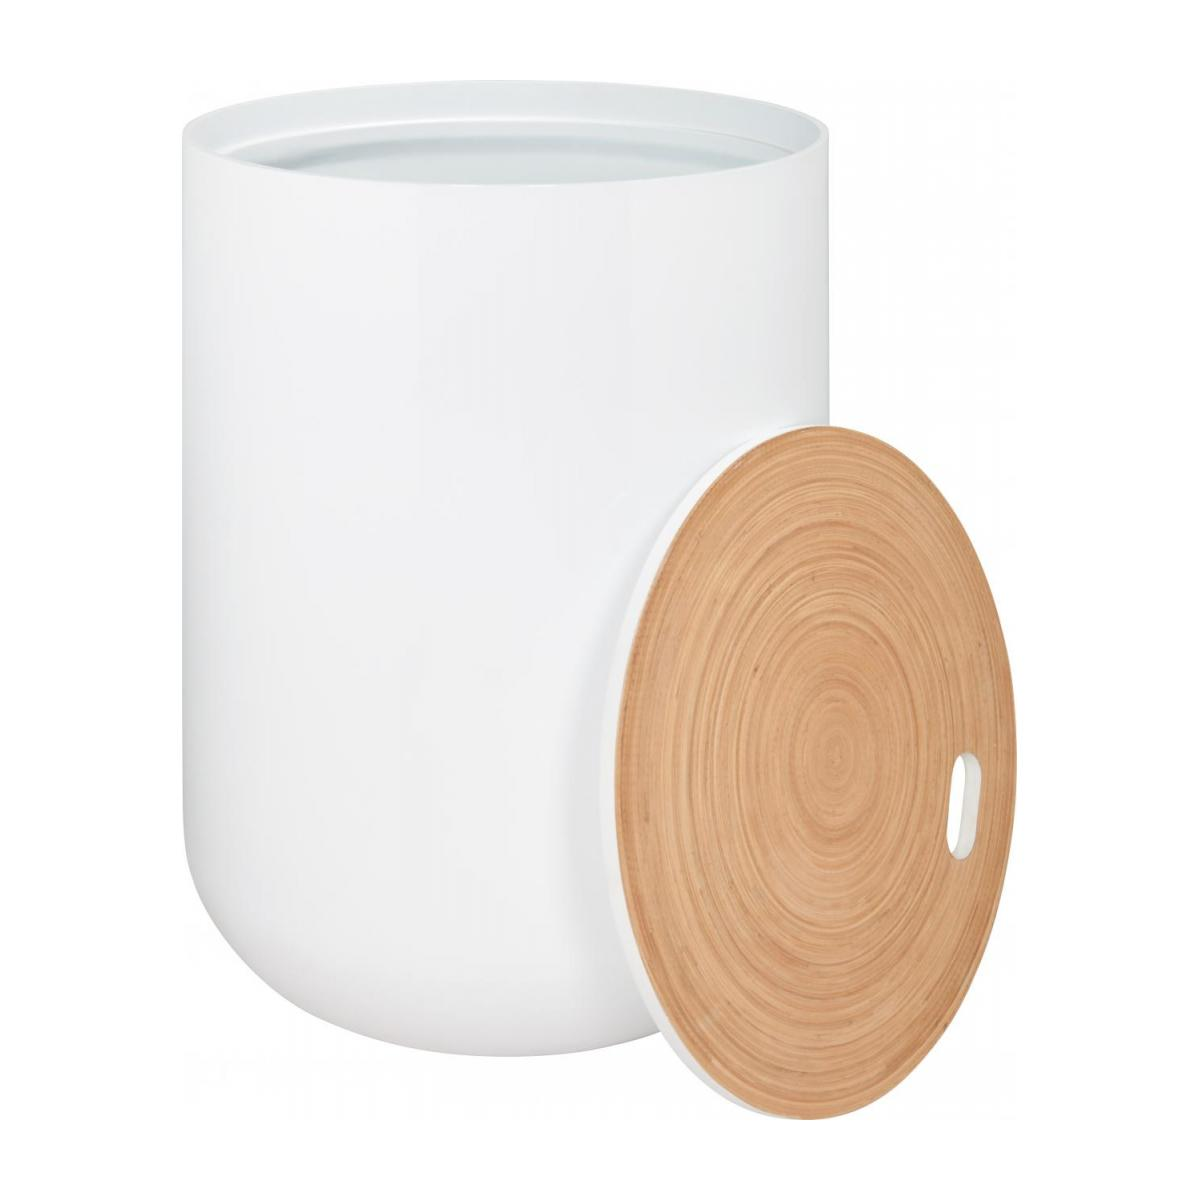 White bamboo side table 40cm n°2